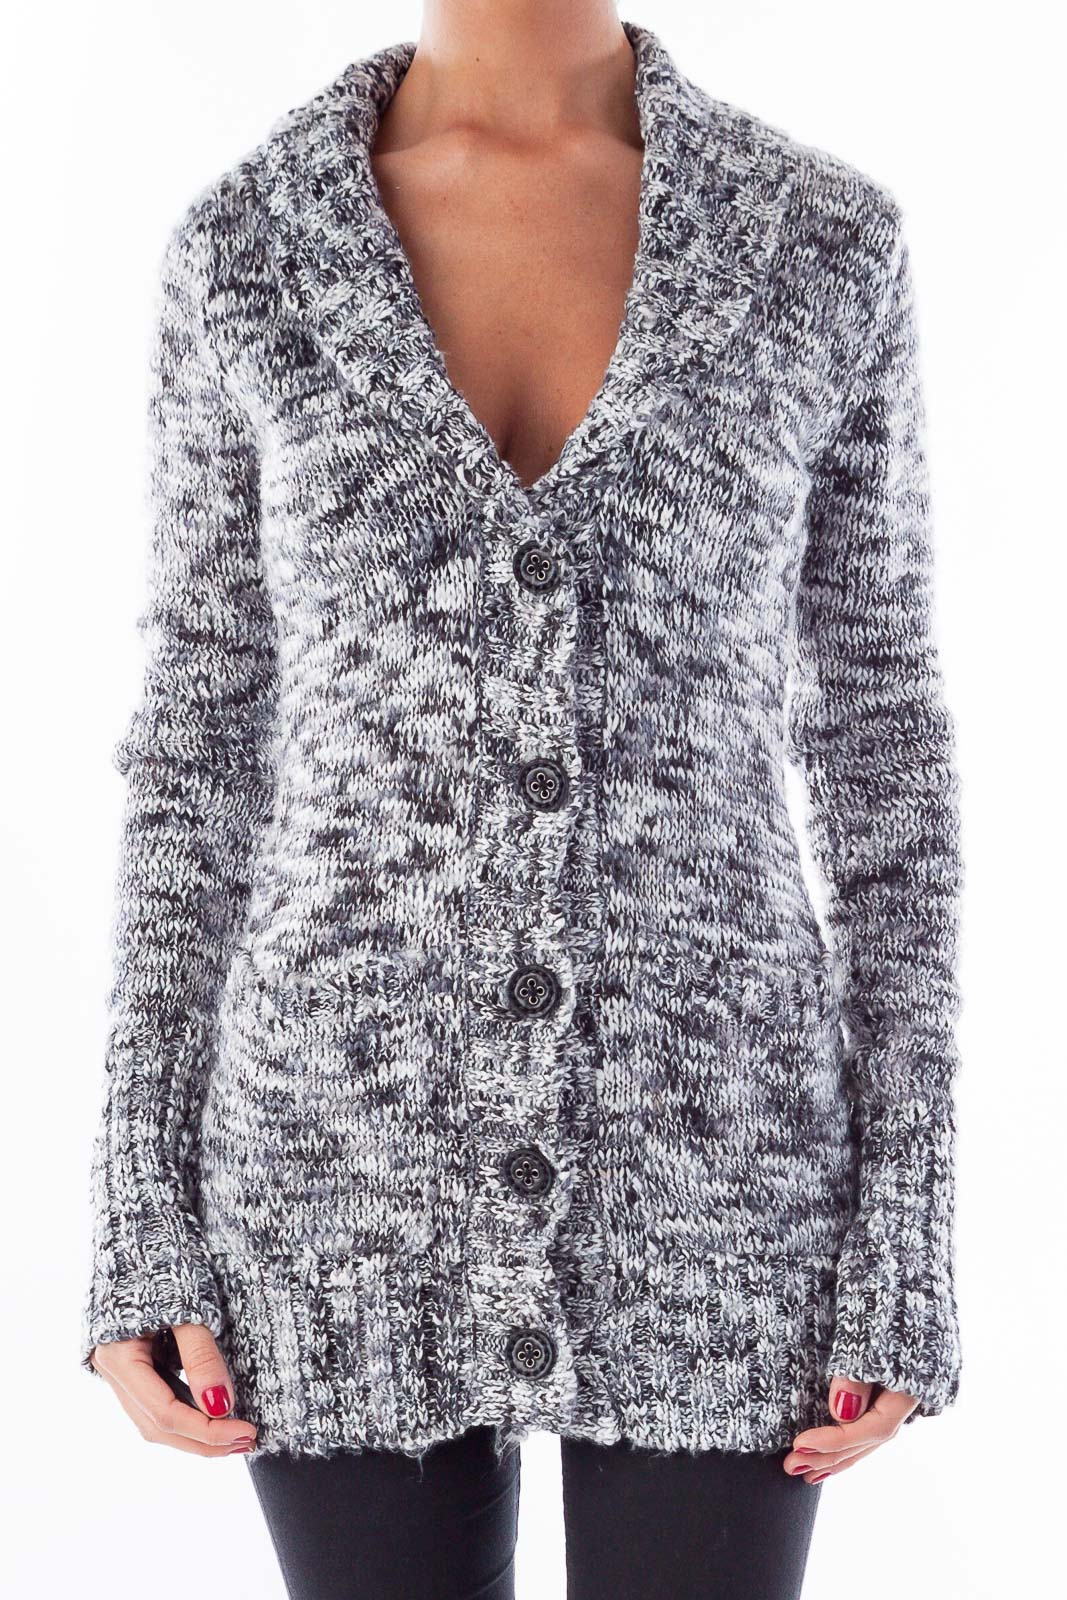 Gray & White Chunky Sweater Front